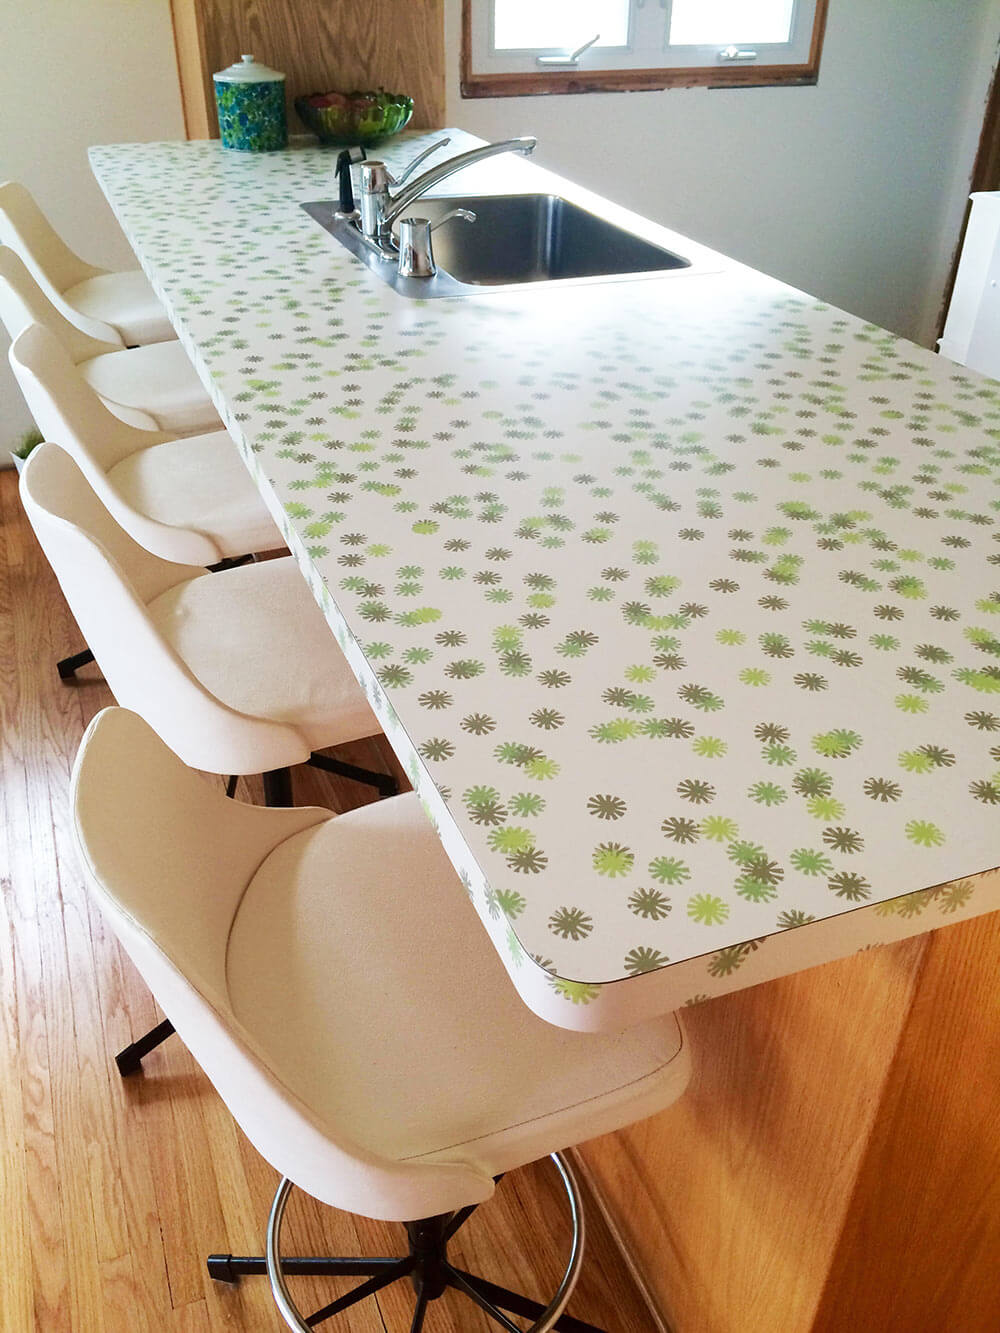 Sneak peek: Kristen\'s kitchen renovation using Wilsonart \'Daisy ...